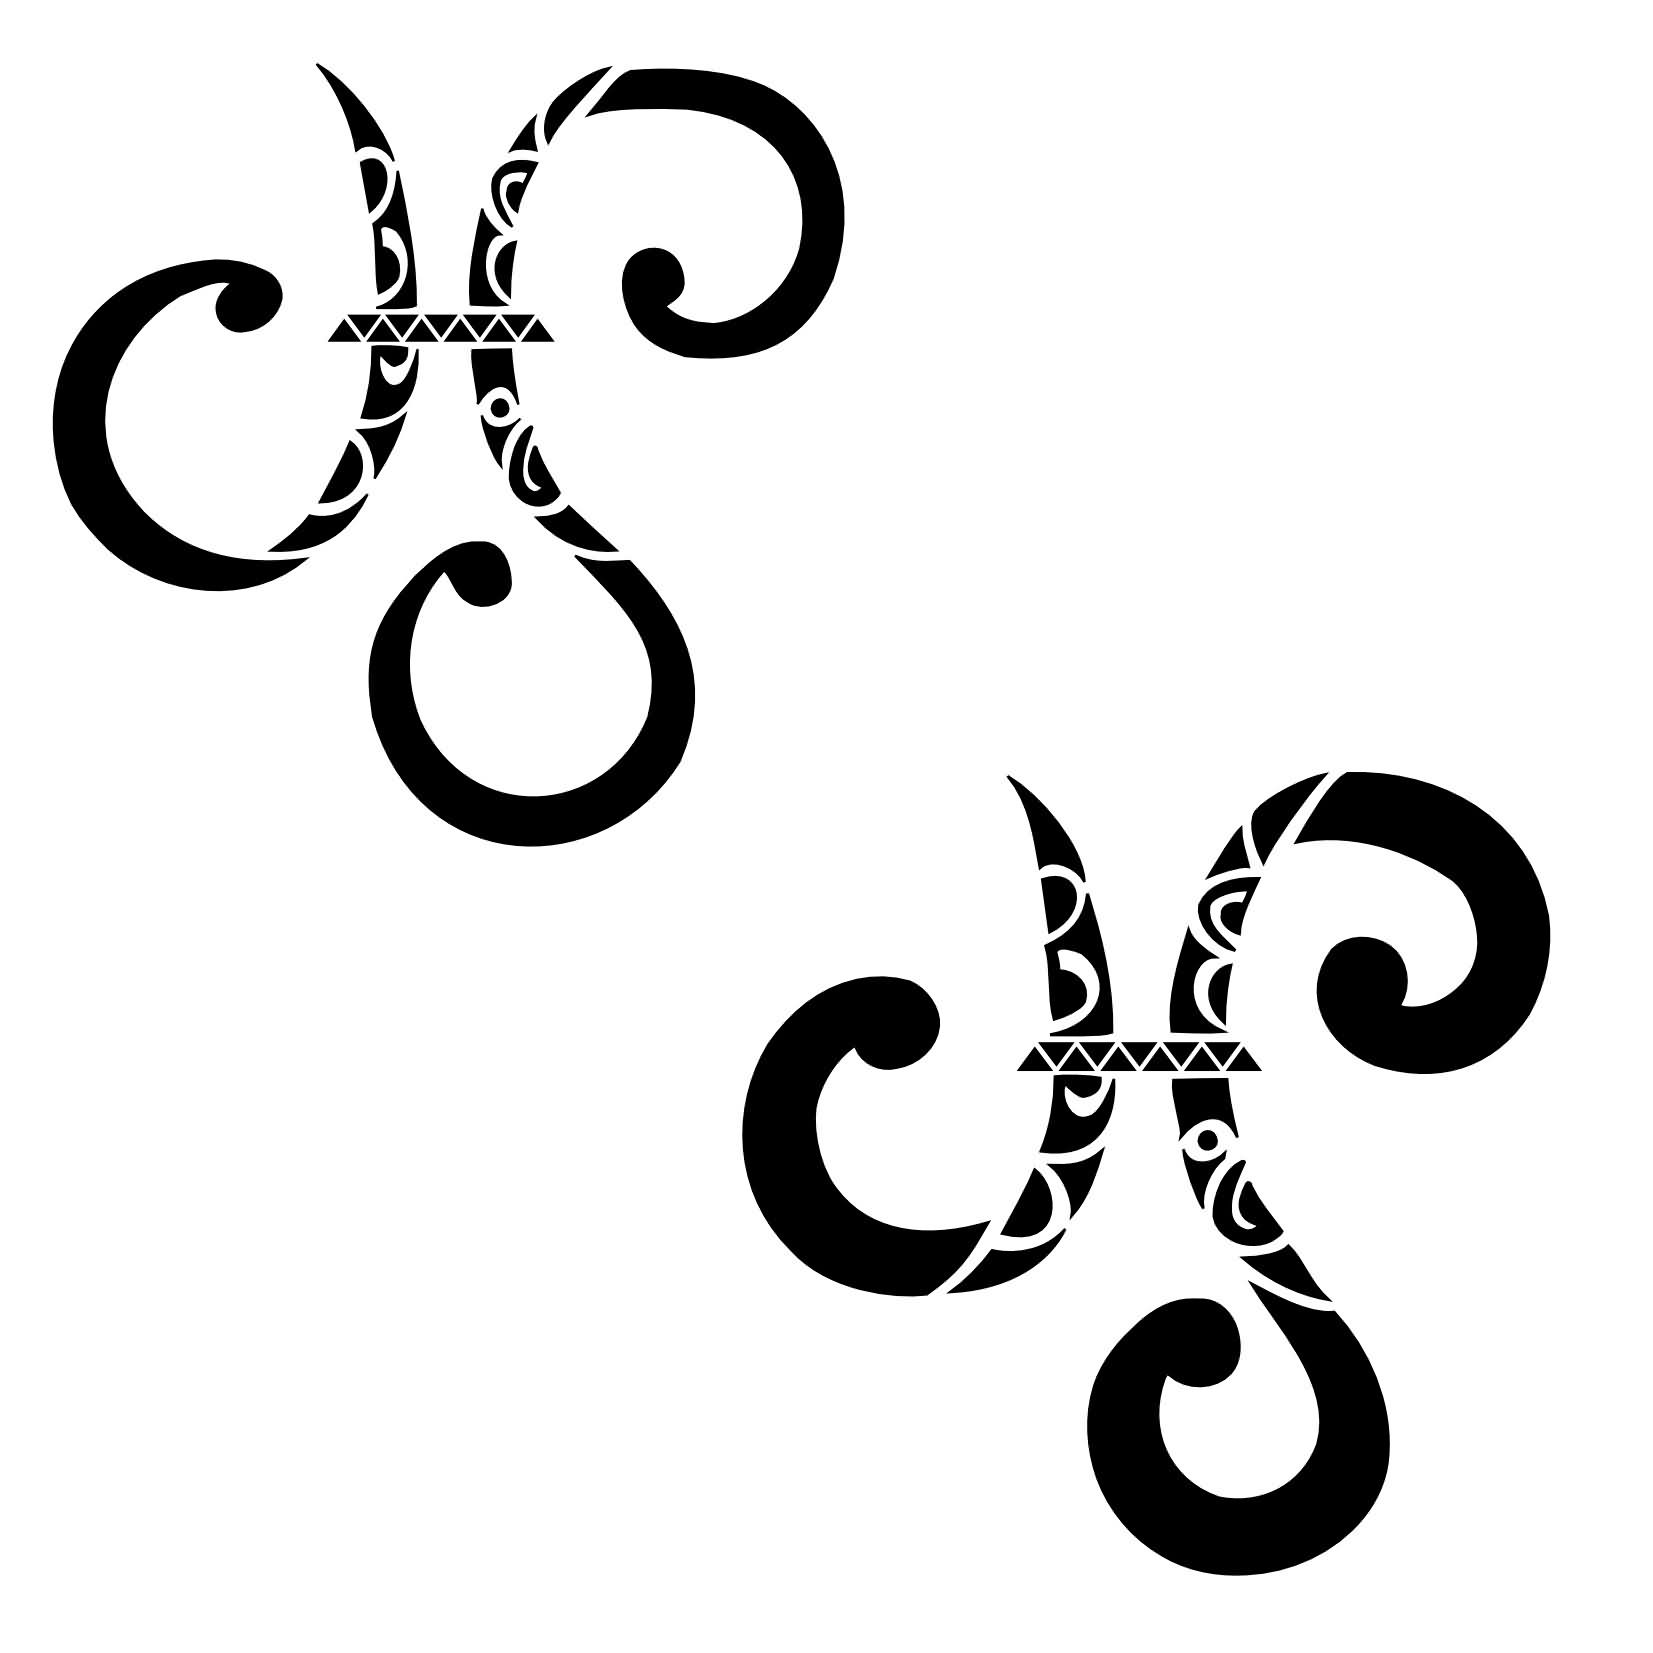 New Ink Pisces Symbol Tattoos